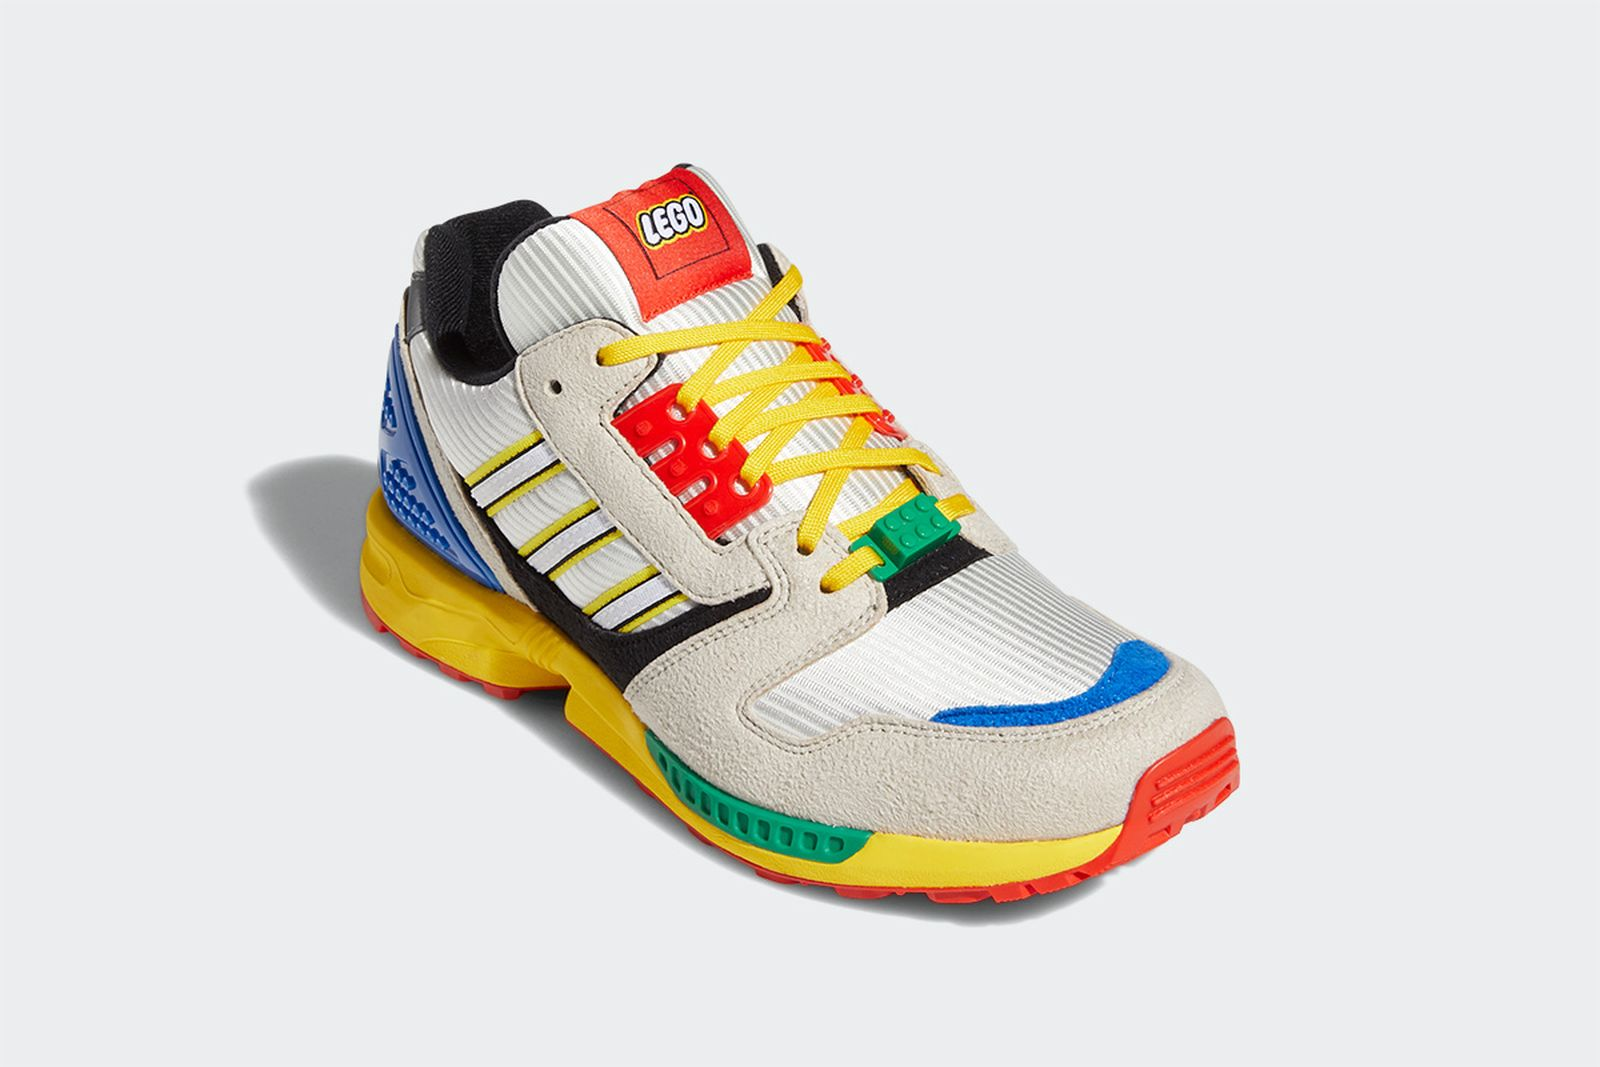 lego-adidas-zx-8000-release-date-price-05